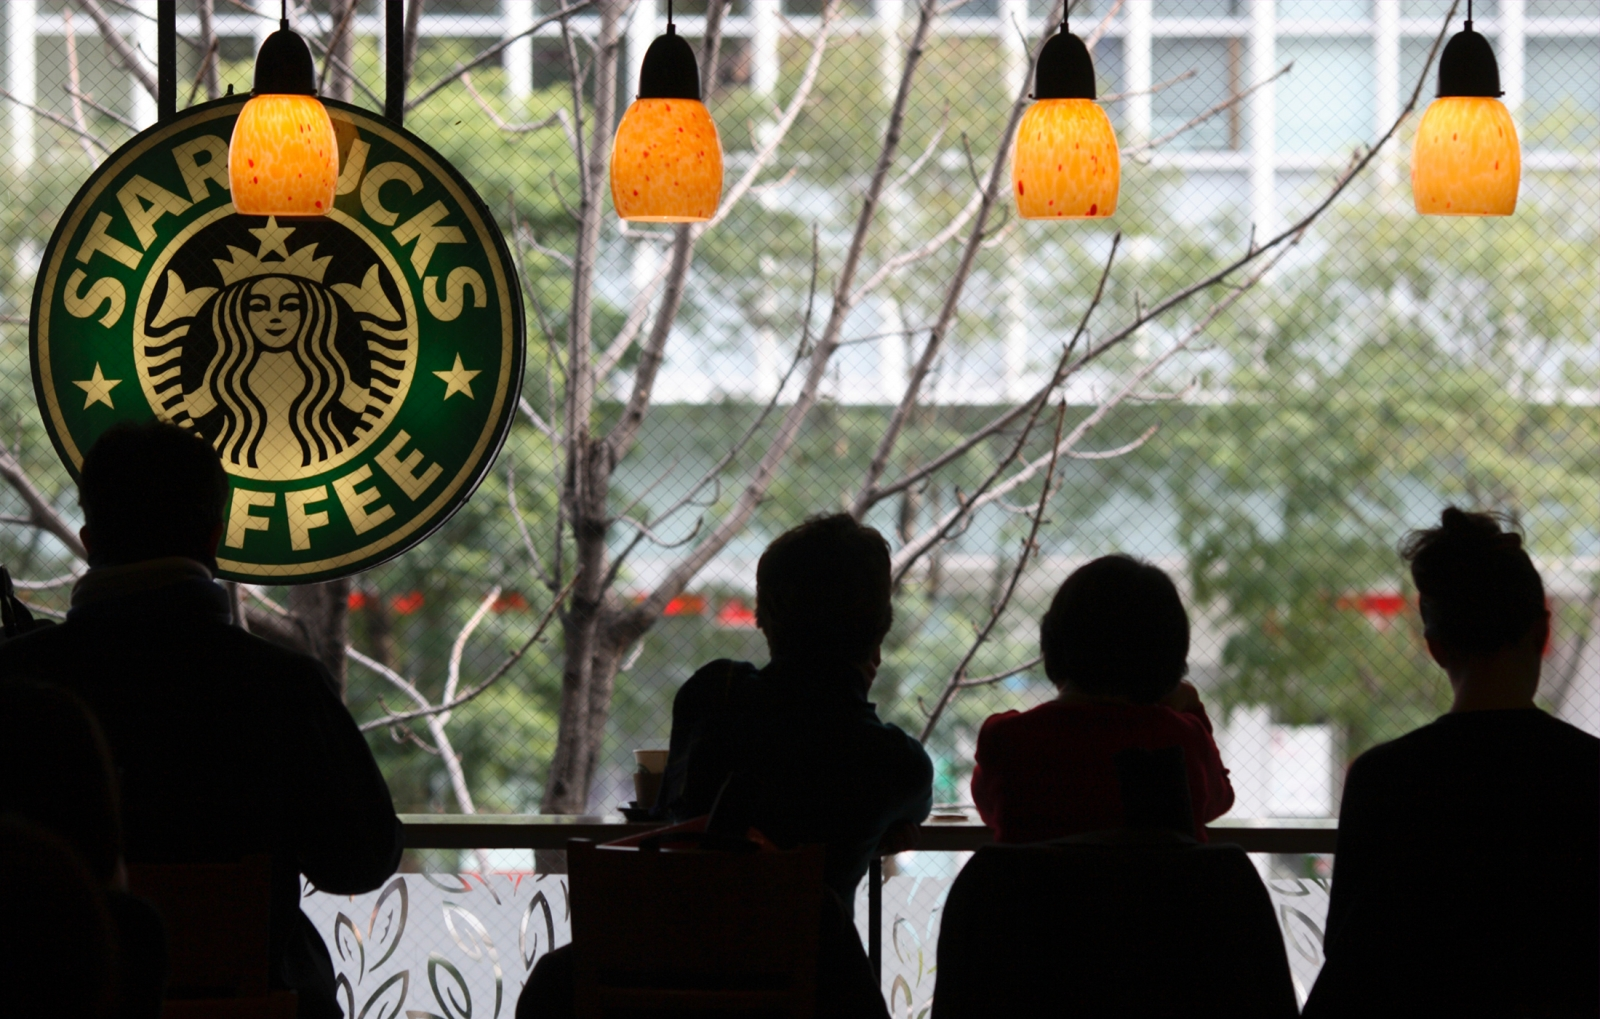 GC hacks Starbucks' servers to catch Adventist account holders